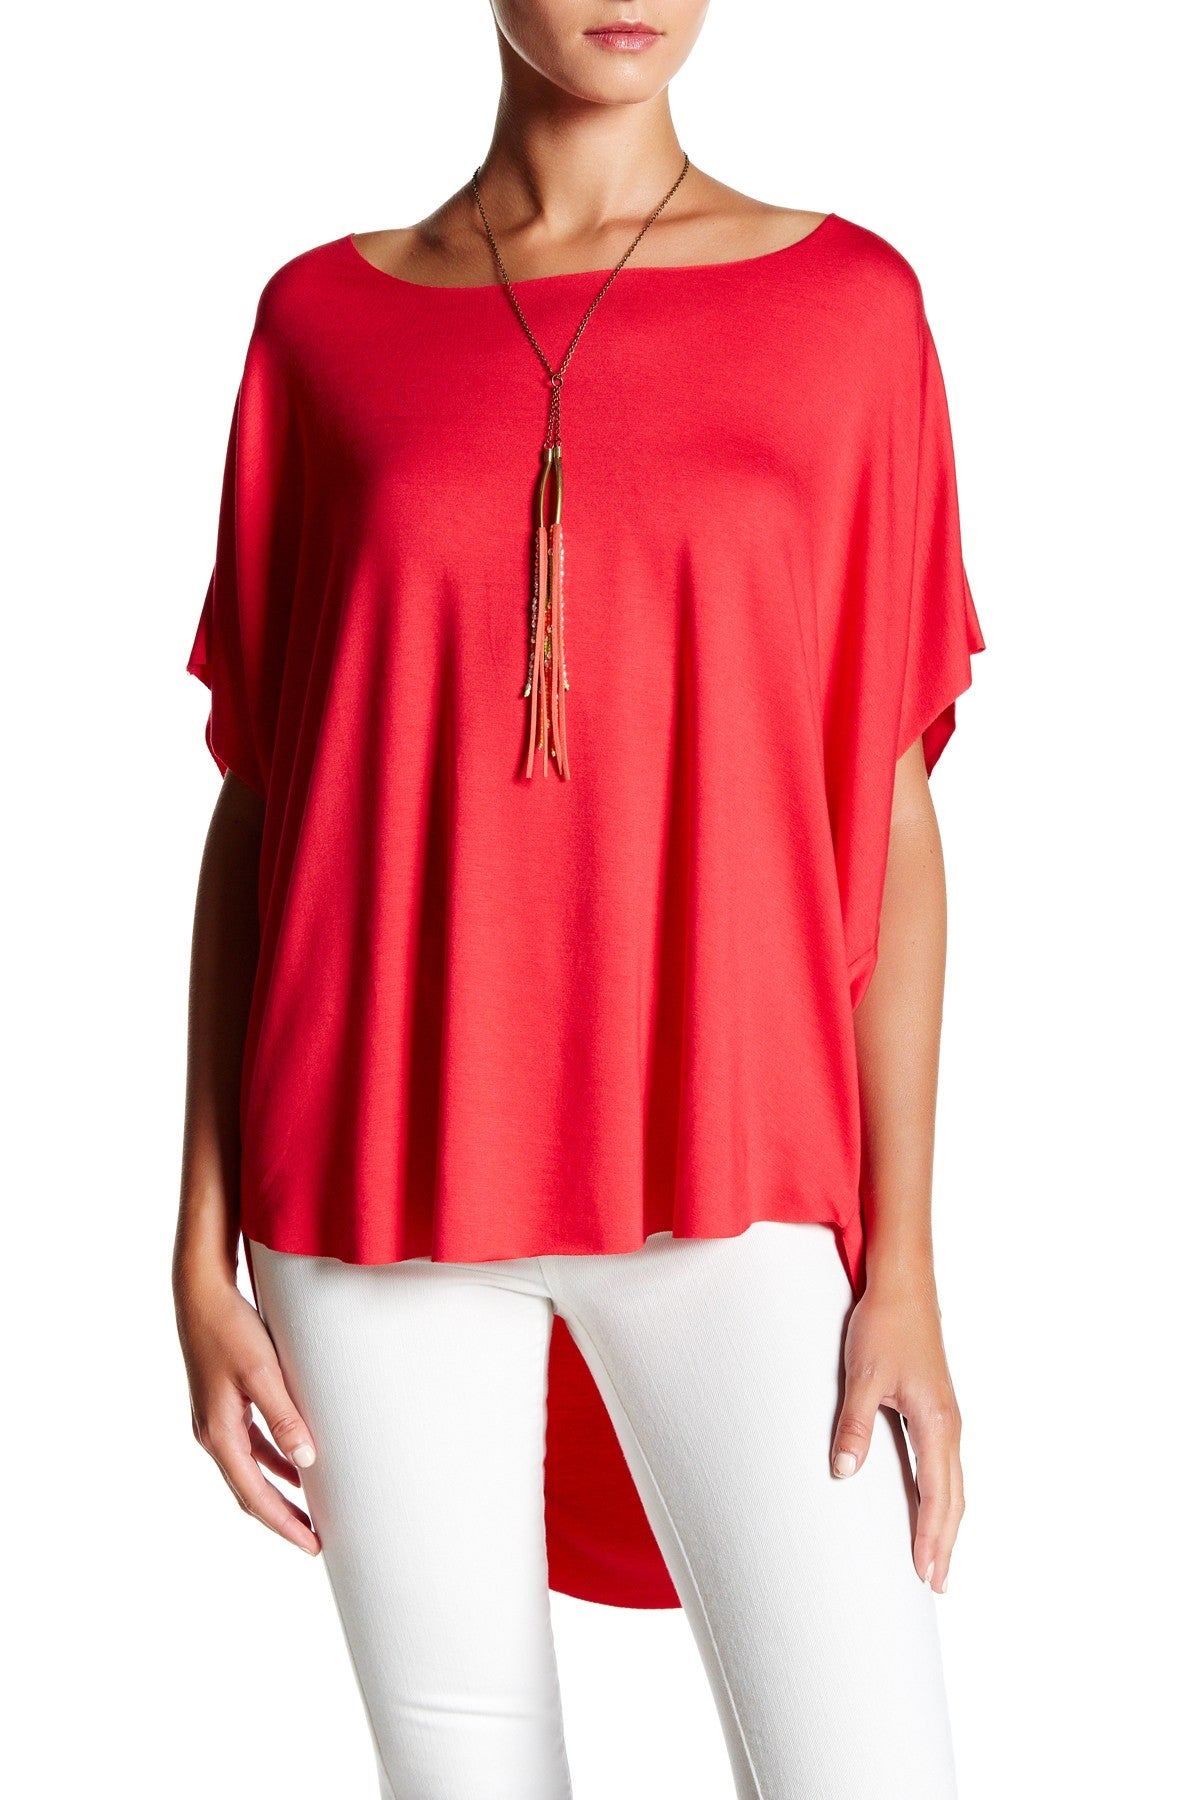 Scoop Neck High Low Top